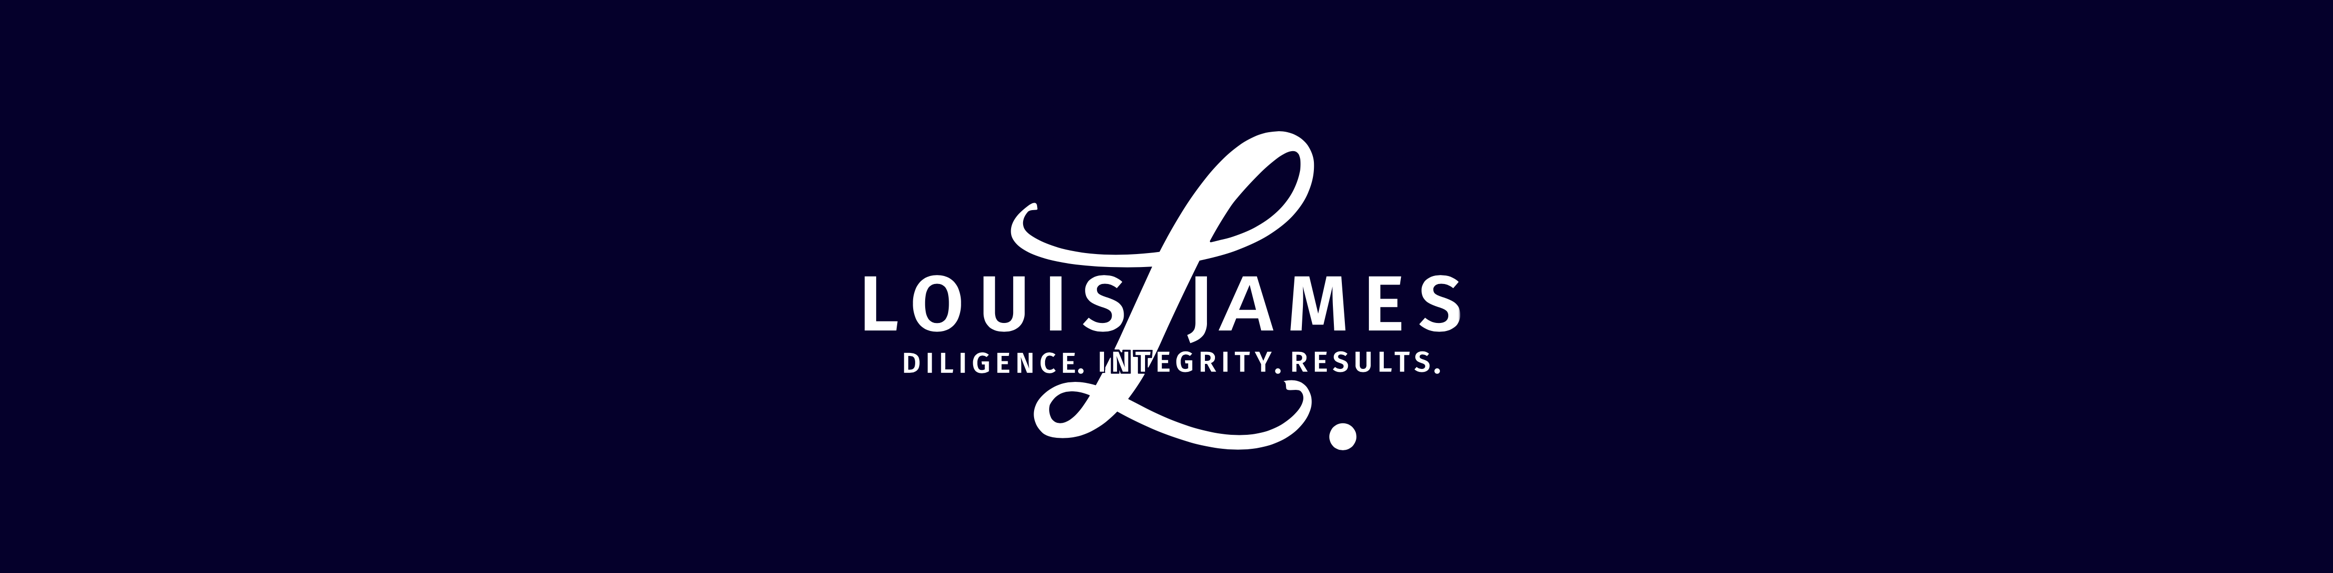 crux investor: The Best Mining Resources for Investors - independent speculator Louis James